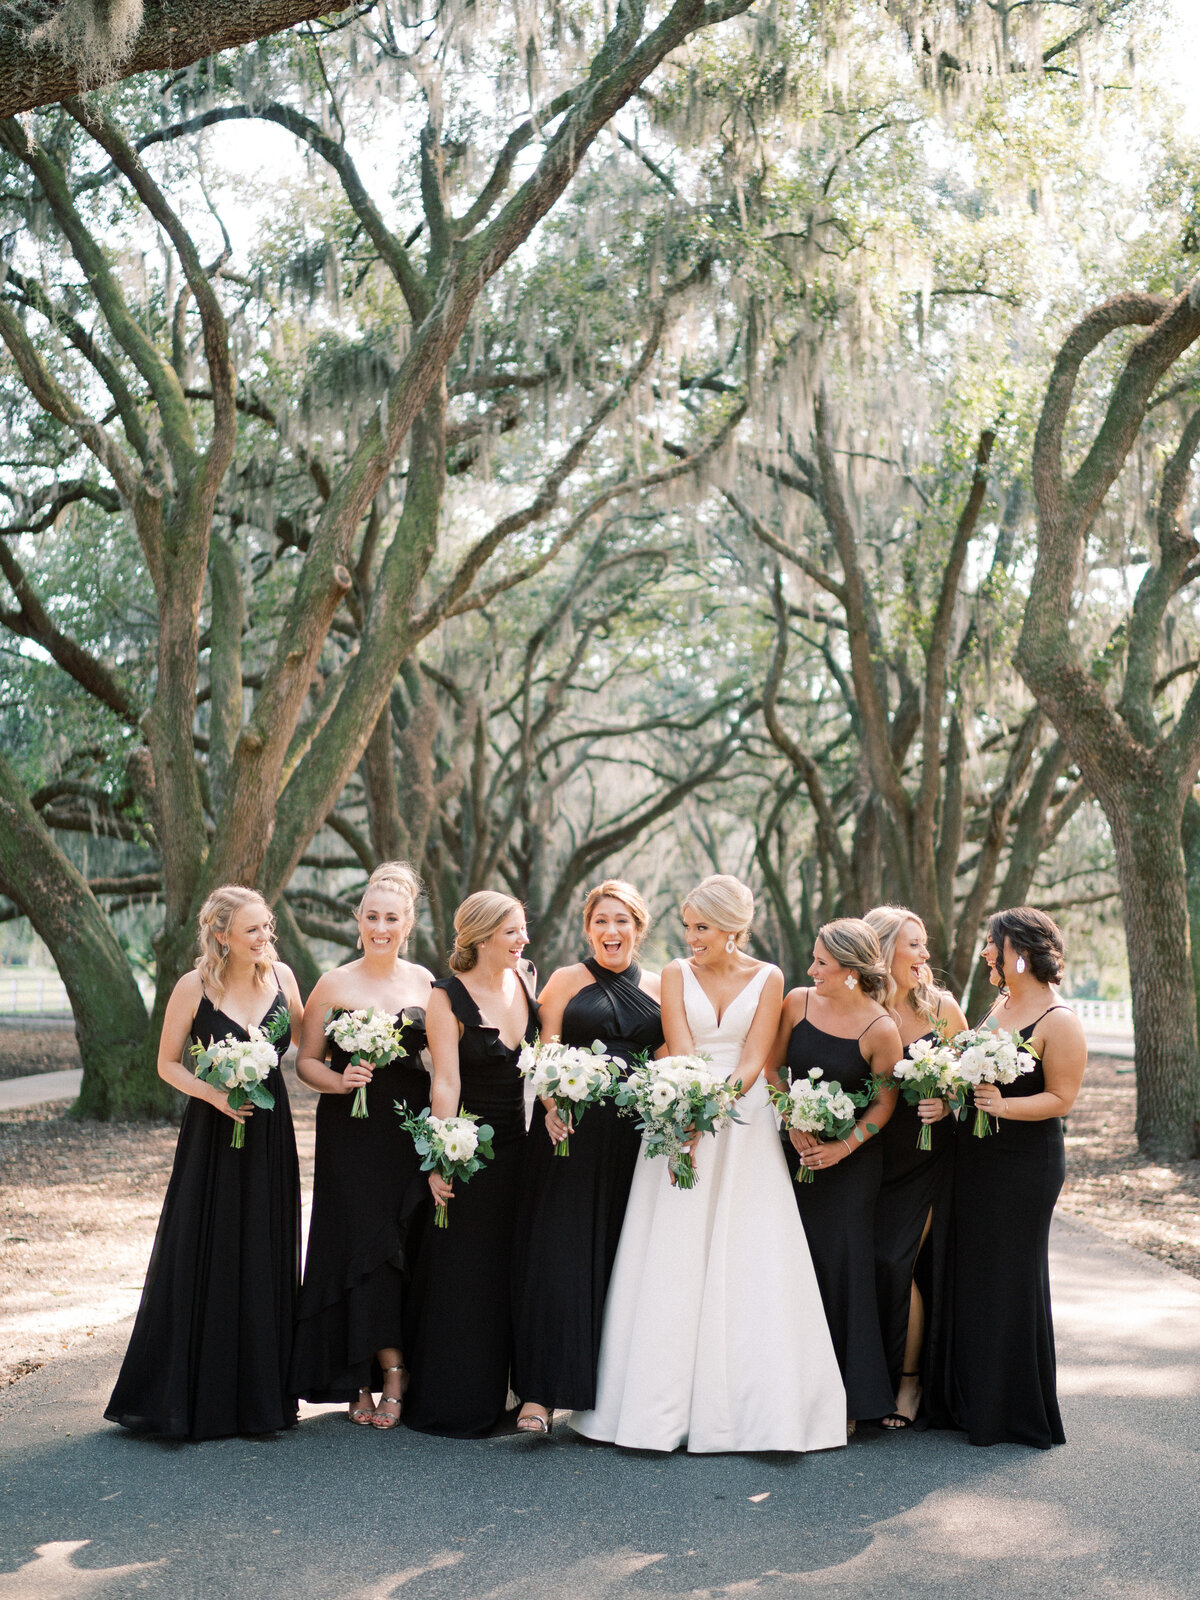 Belfair-Plantation-Bluffton-Hilton-Head-Island-Wedding-Philip-Casey-Photo-25